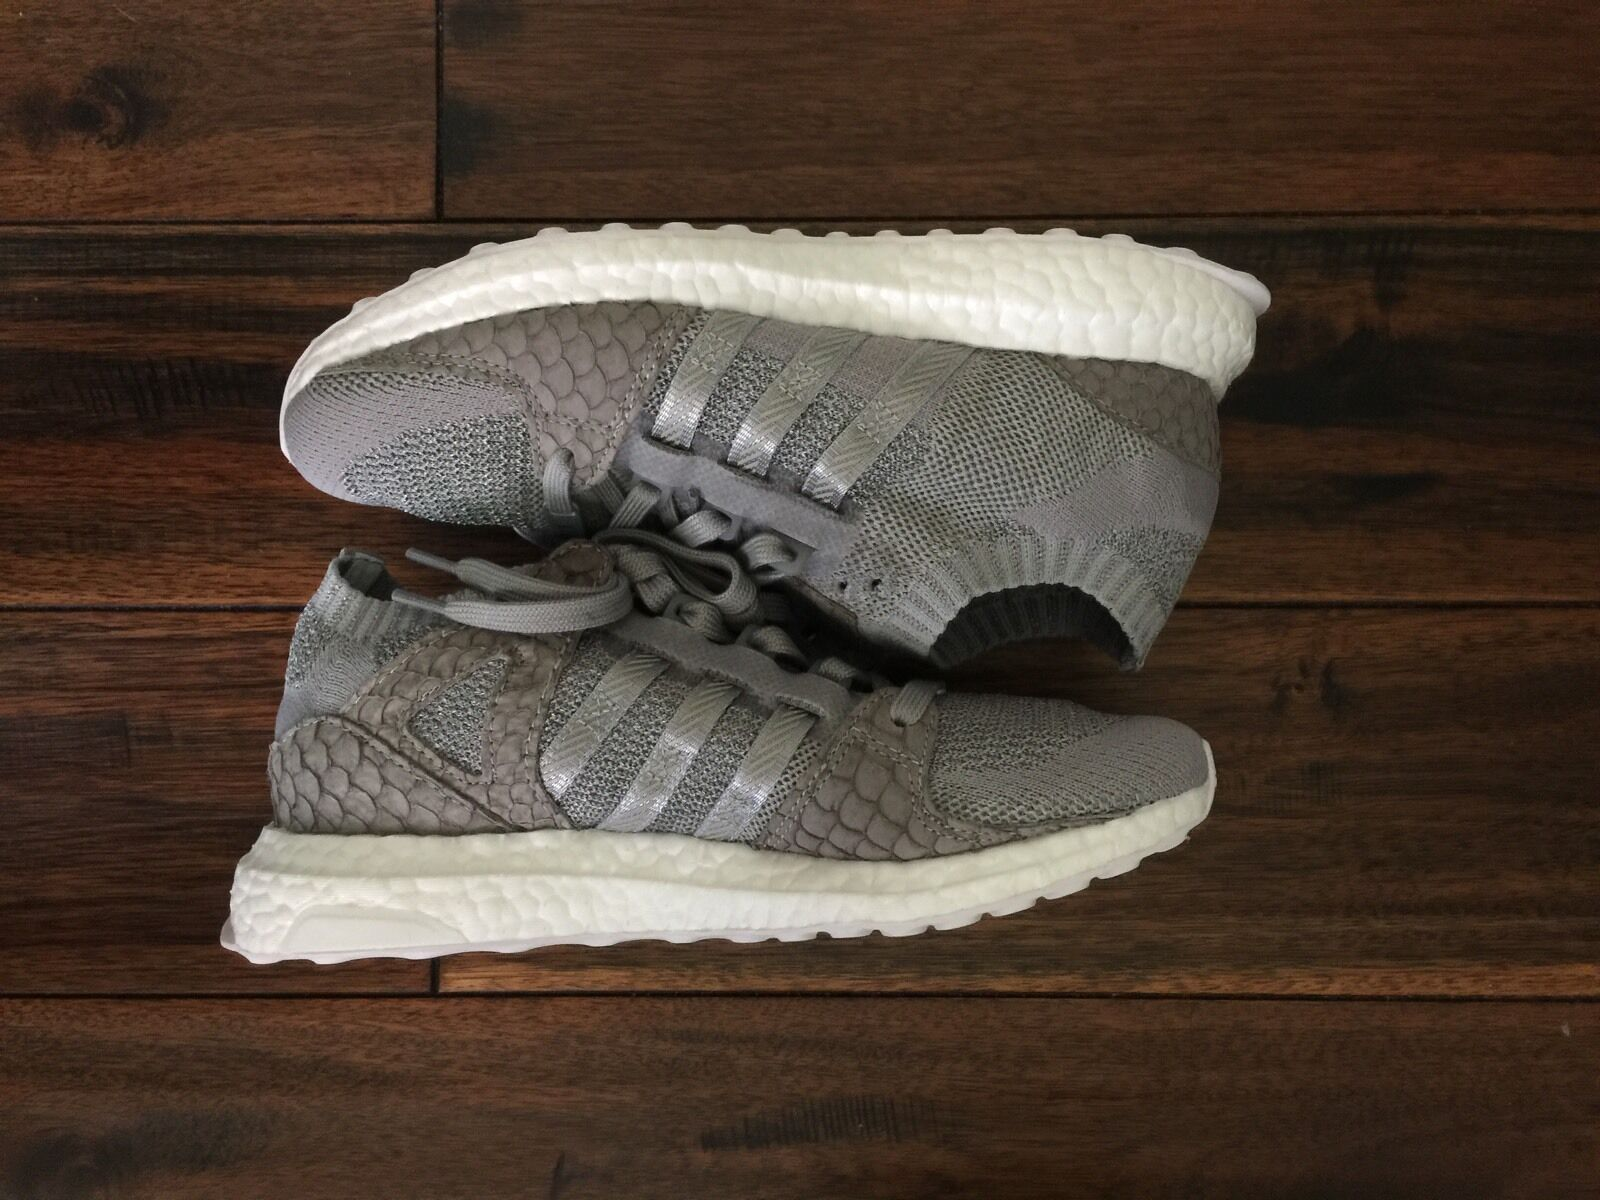 Adidas x Pusha T Support EQT Ultra Pk Boost, Men's 6